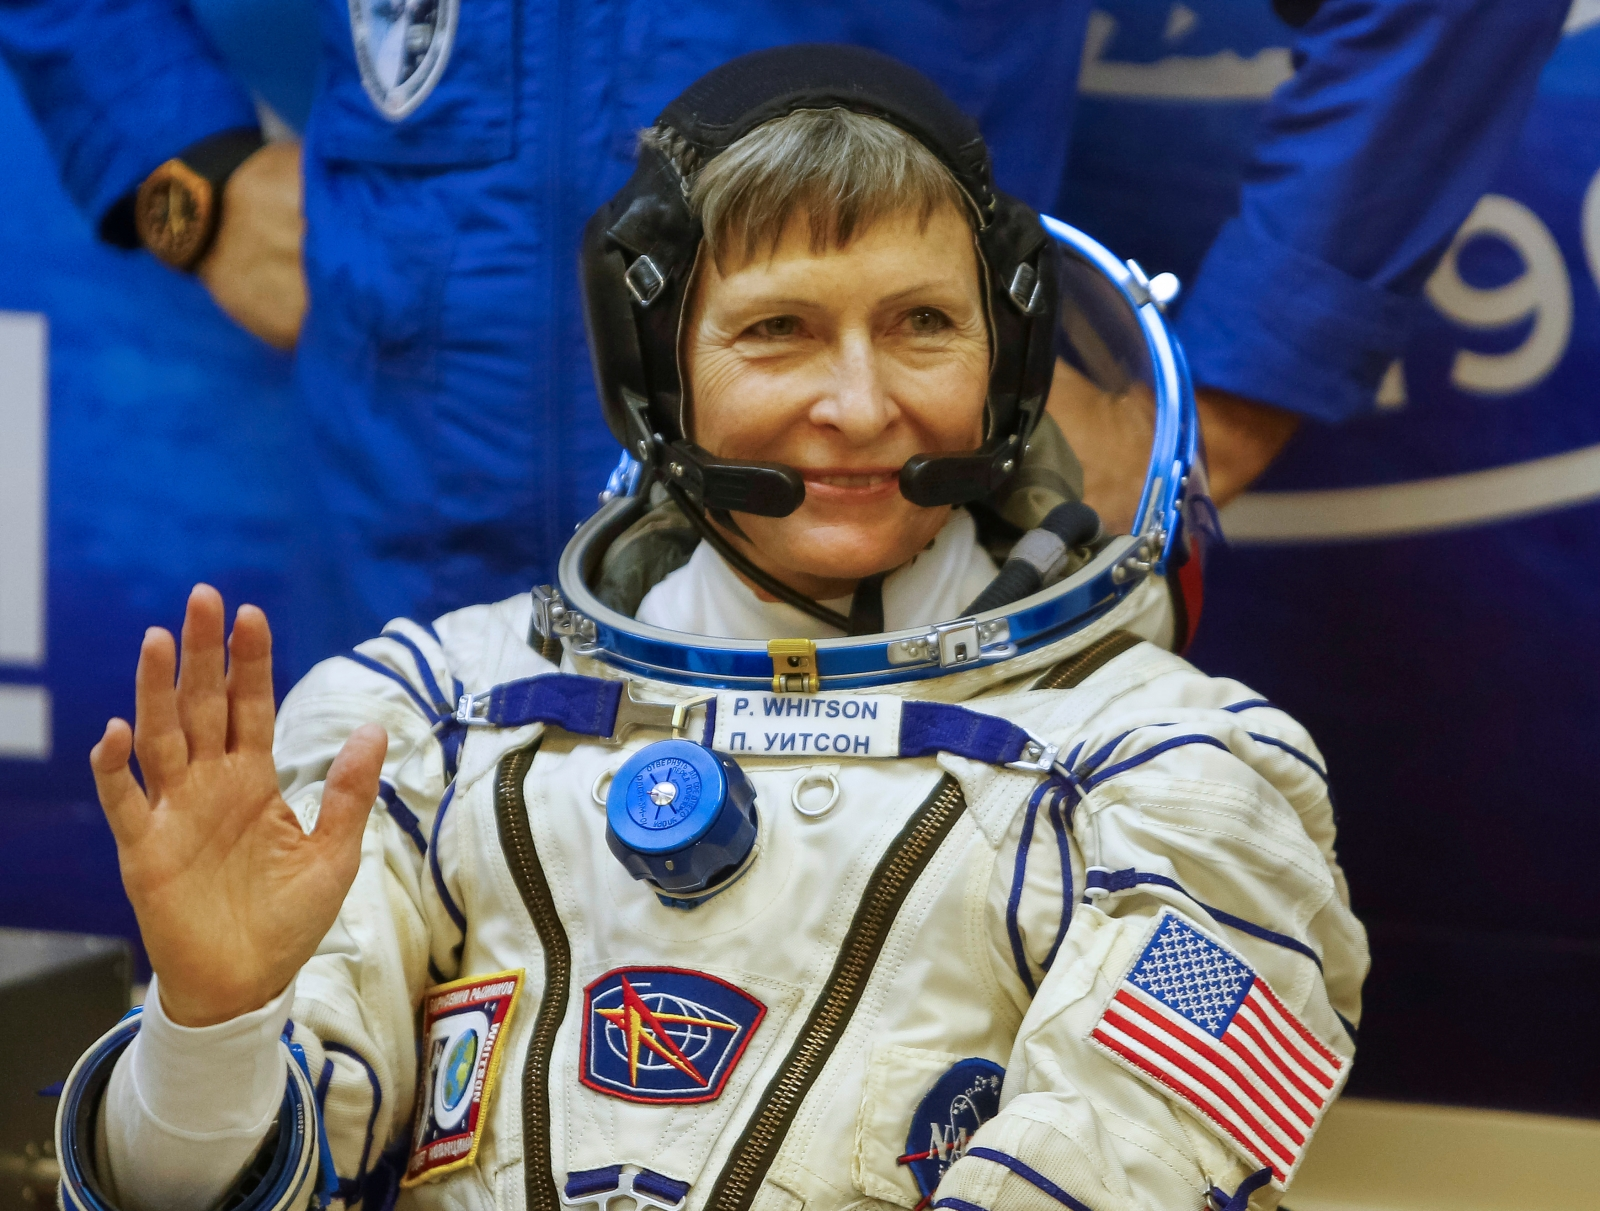 ISS Peggy Whitson